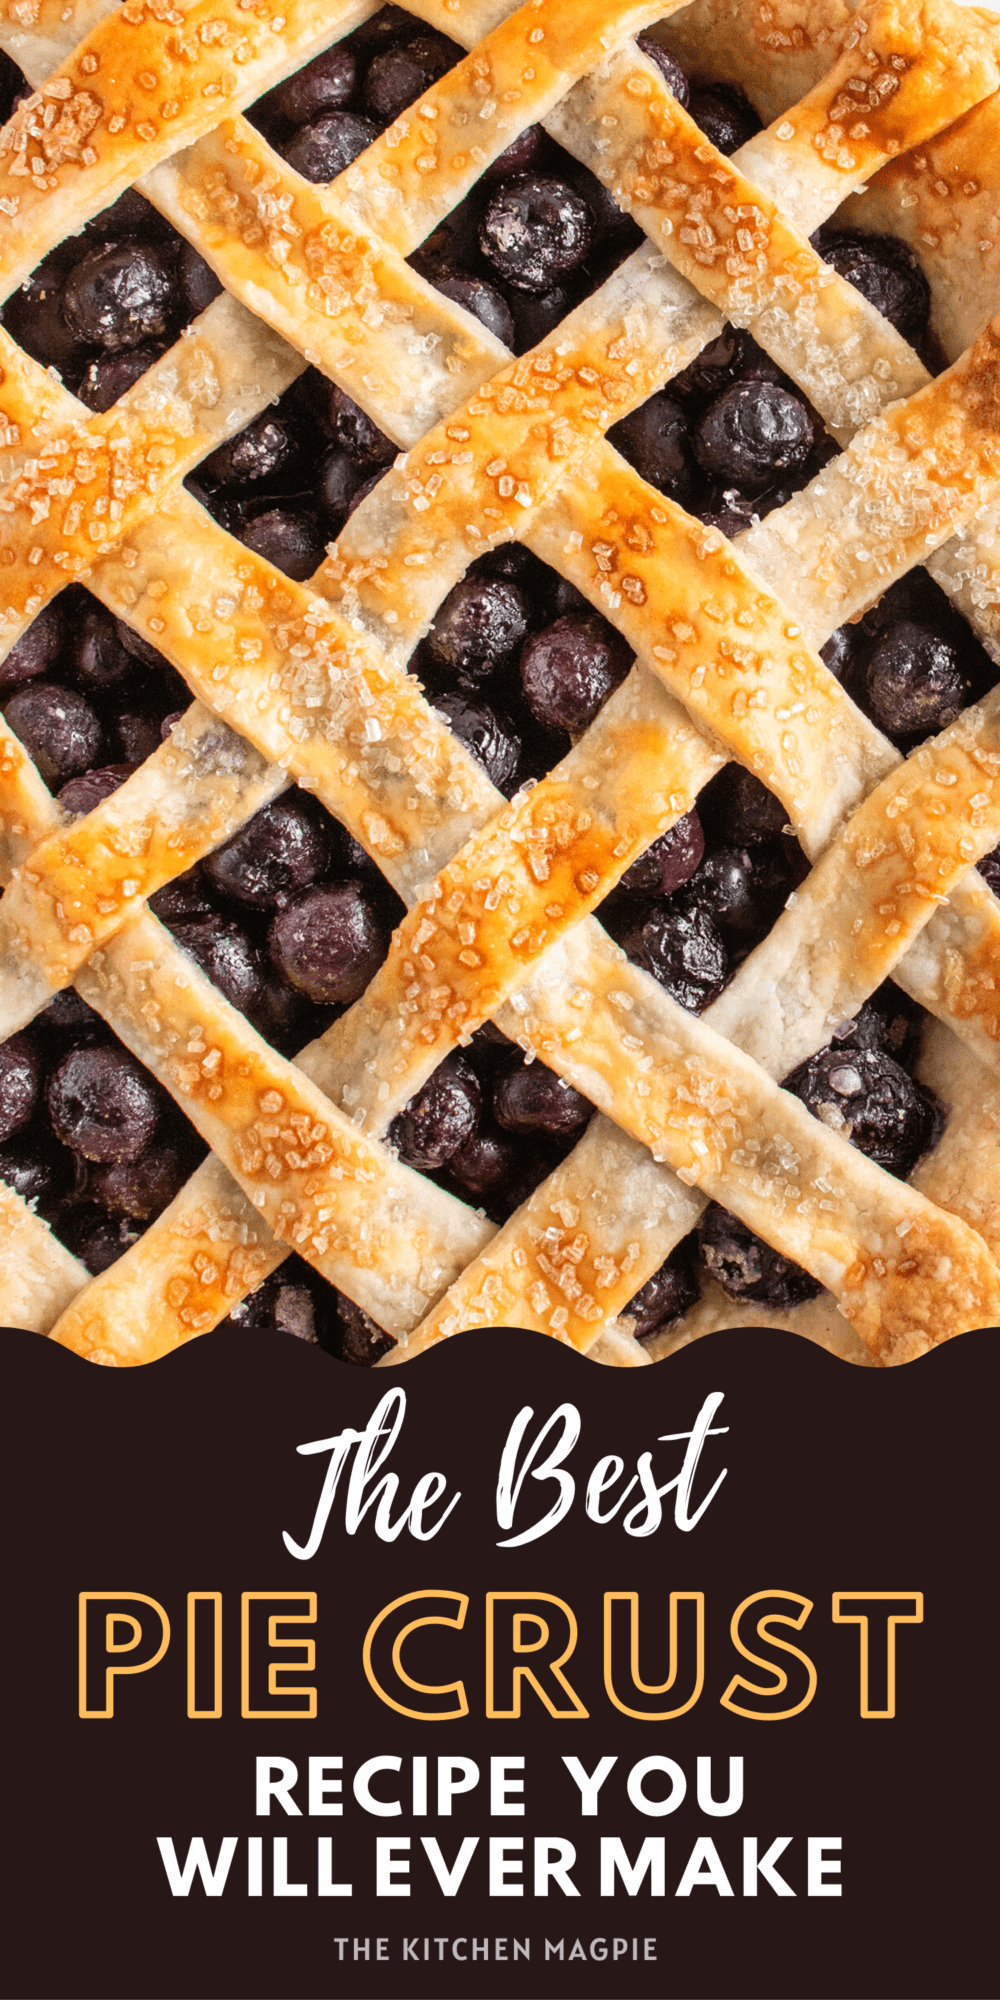 I have tried them all, and this truly is the best pie crust recipe! This is the only pie crust that my Grandma would use.